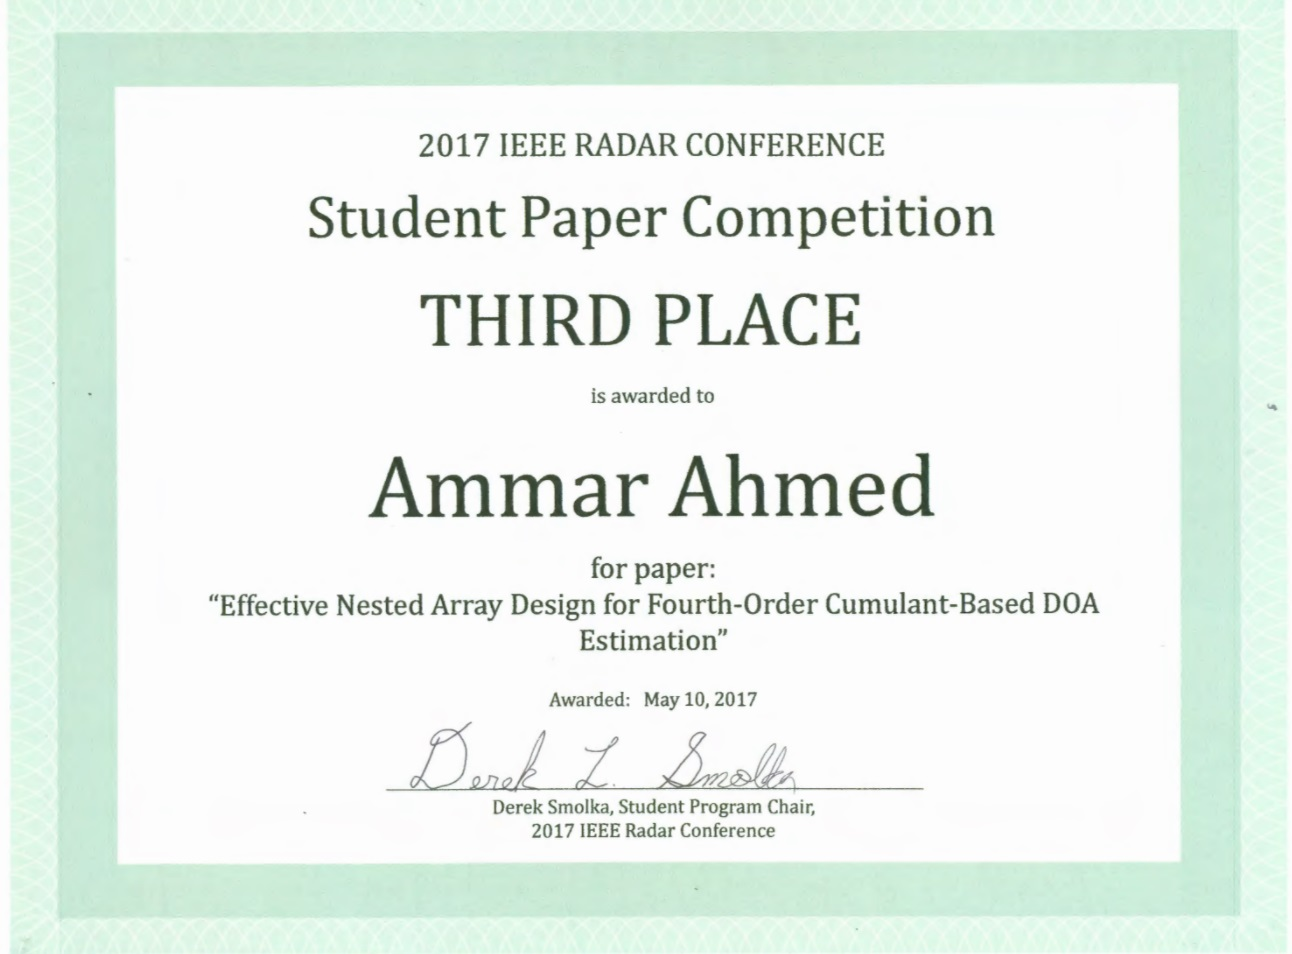 mr ahmed wins student paper award at ieee radarcon advanced